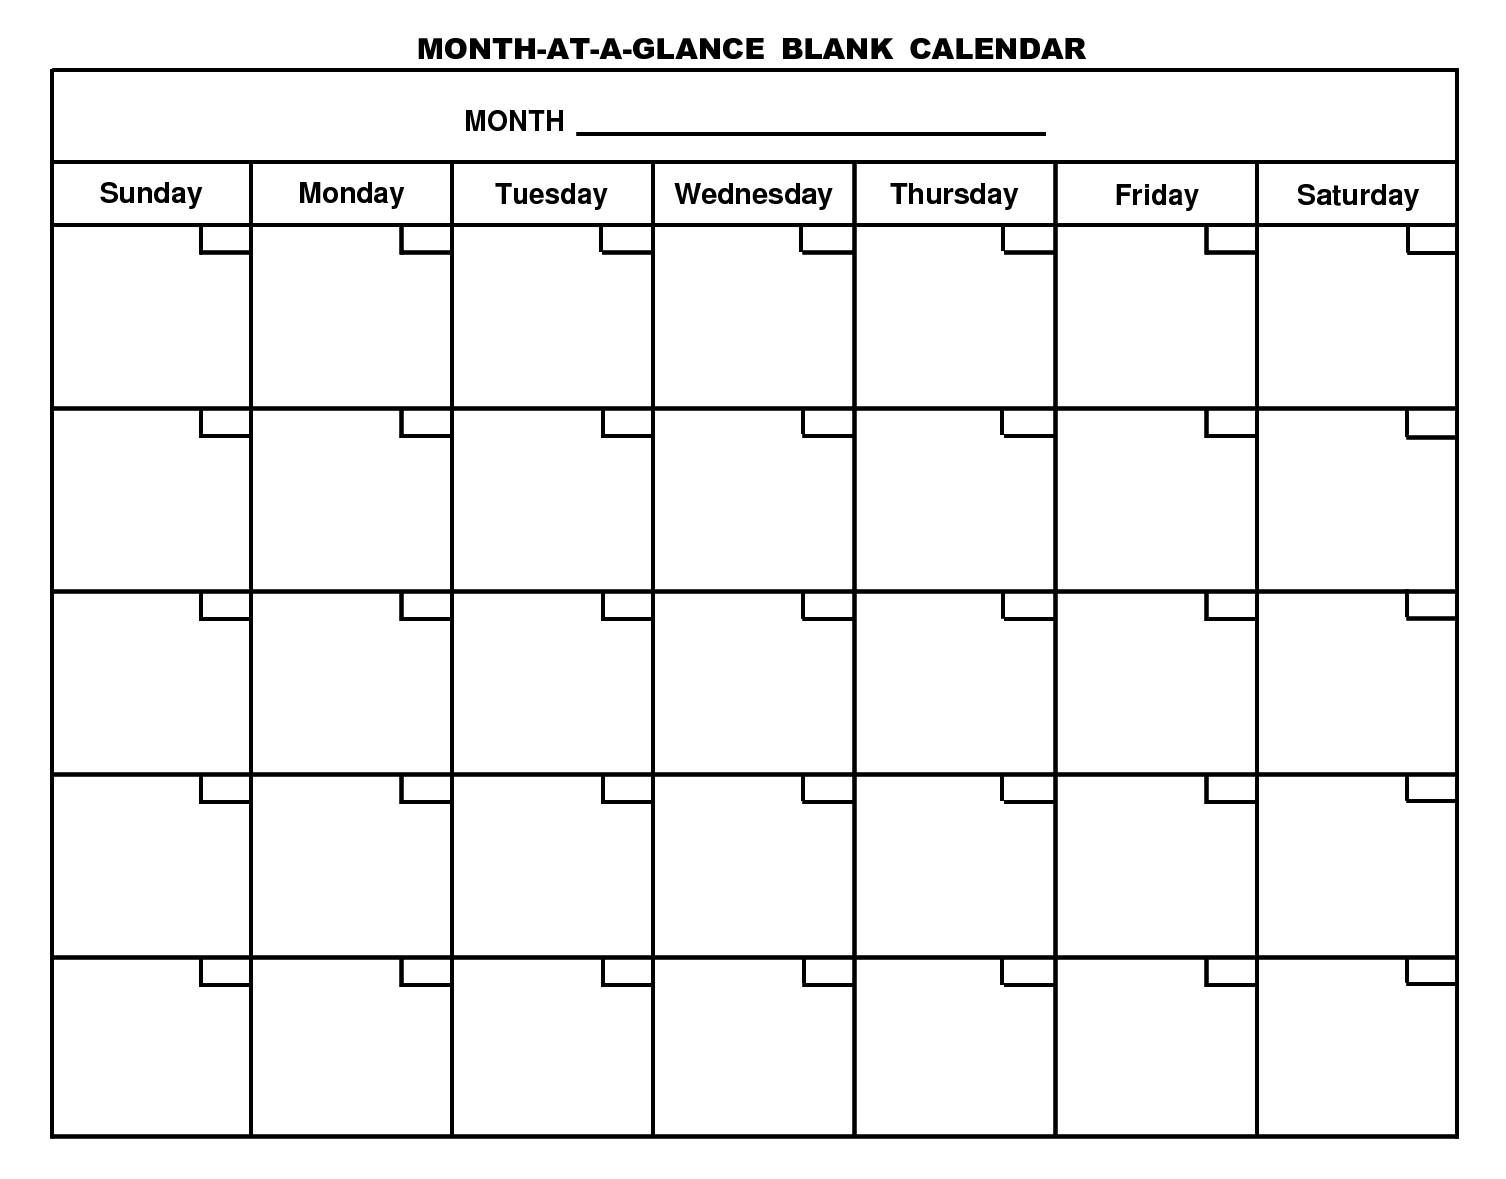 Free Printable Monthly Calendar With Large Boxes | Calendar throughout Blank Monthly Calendar Template To Fill In